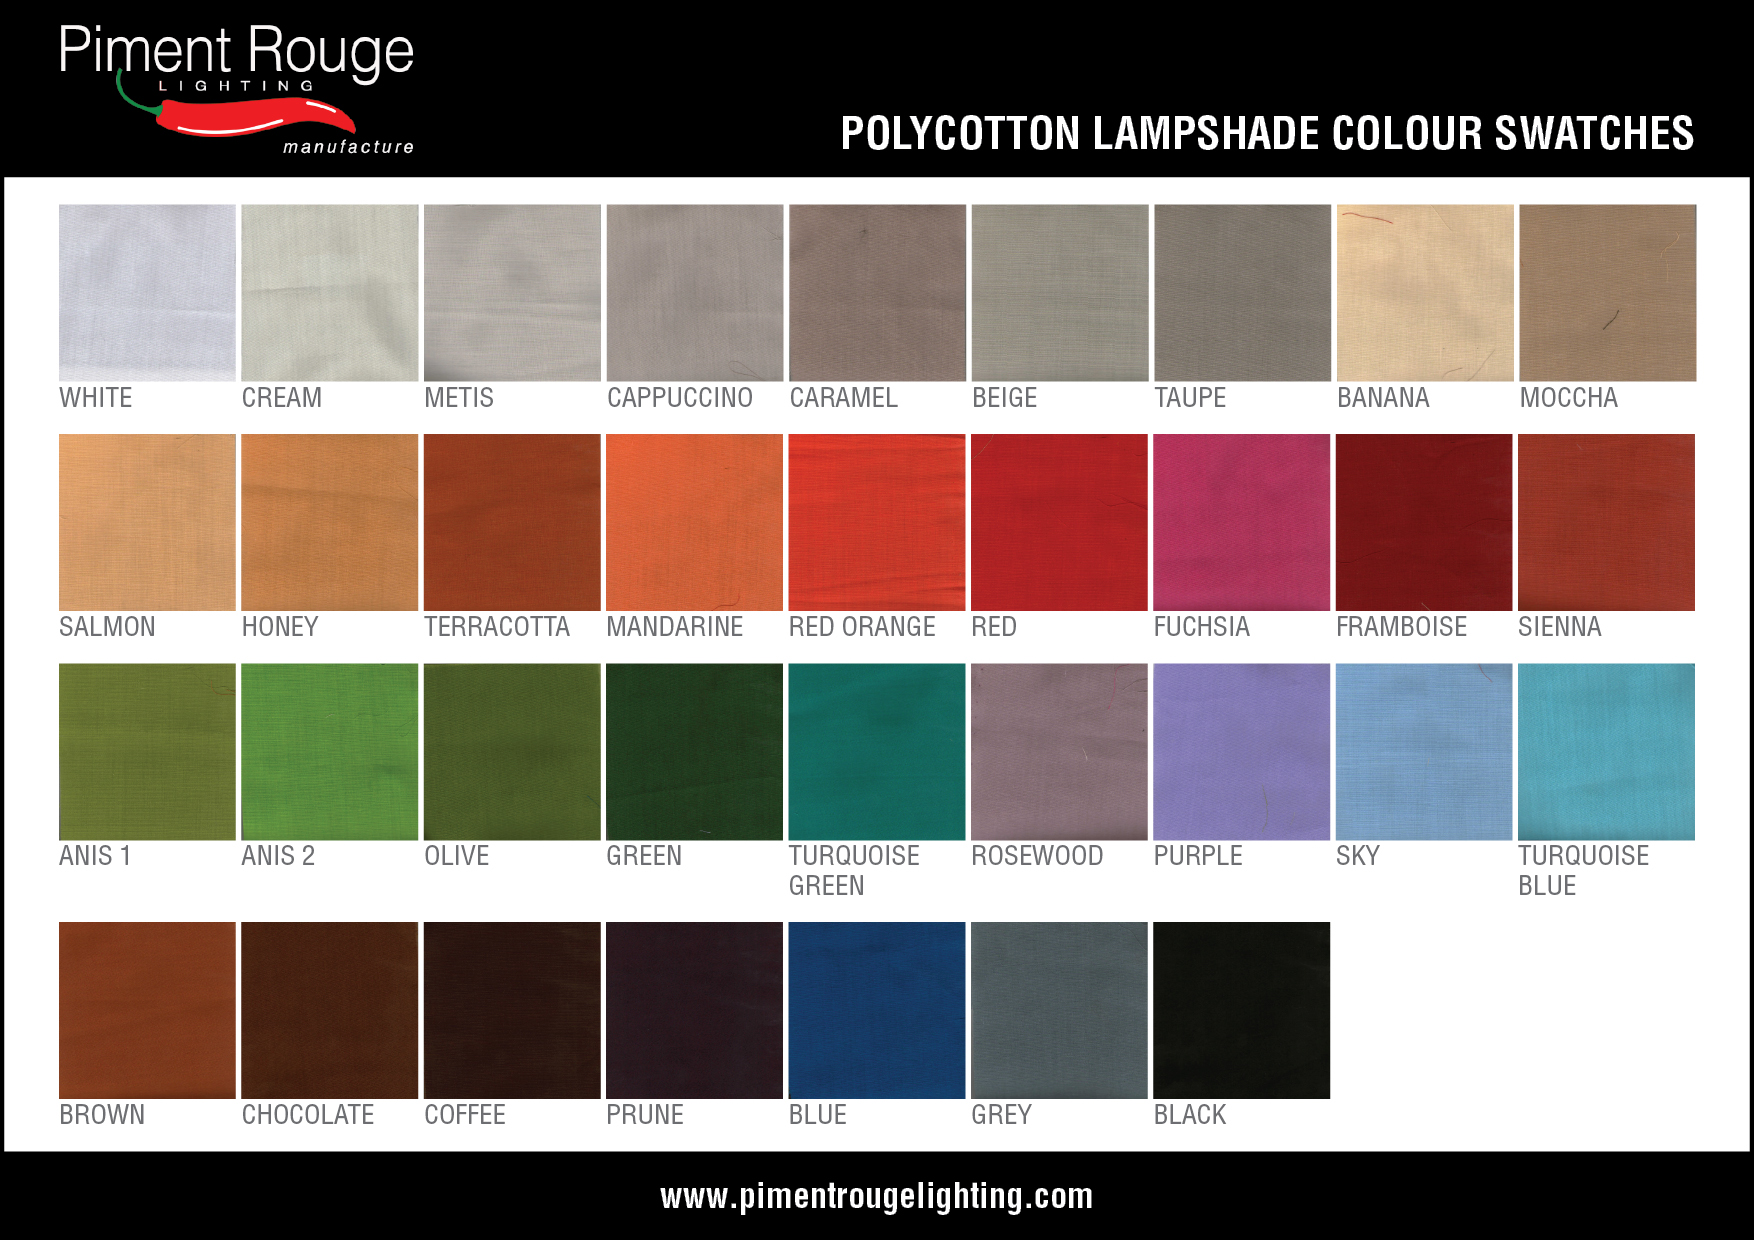 piment rouge lighting bali - polycotton lampshade colour swatches